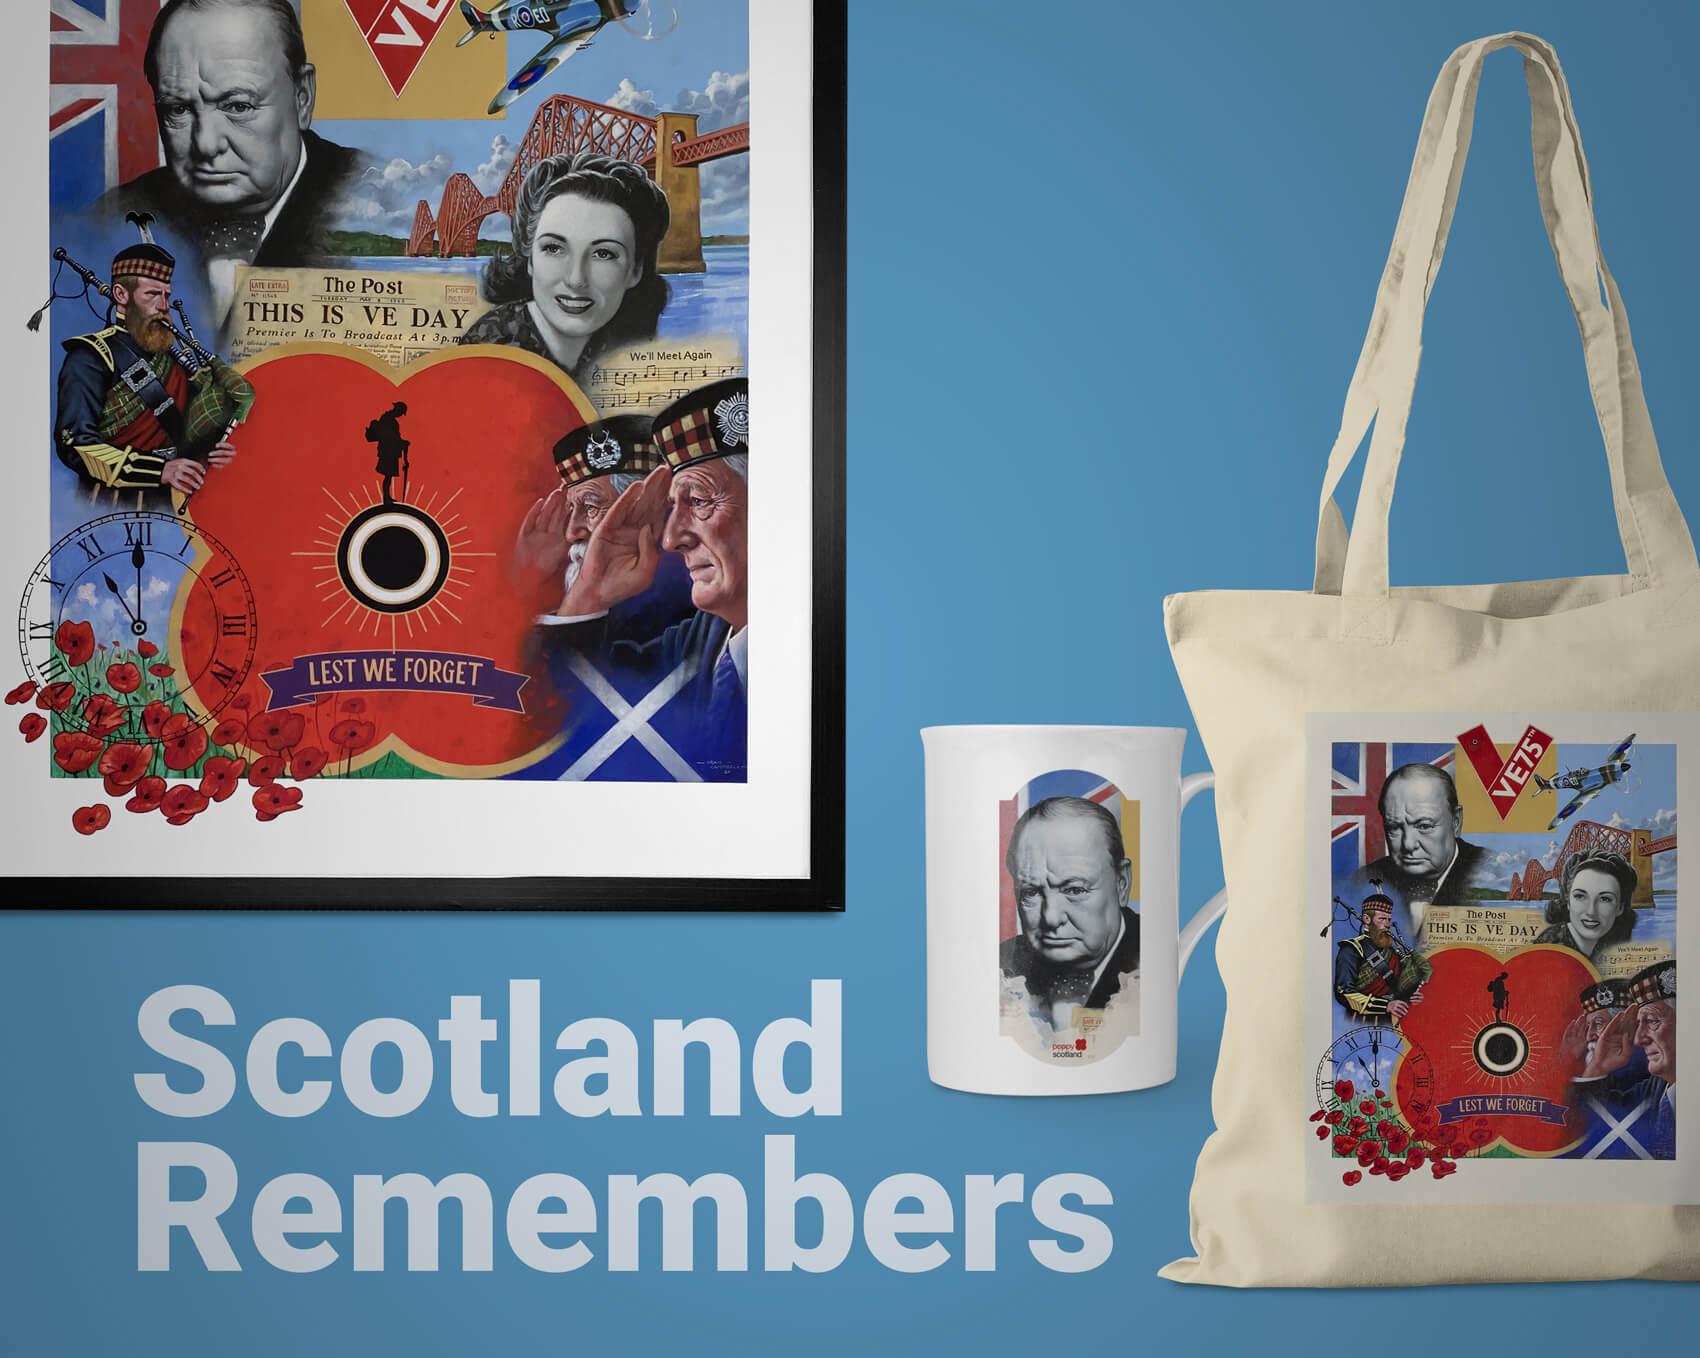 The Poppyscotland Scotland Remembers Collection